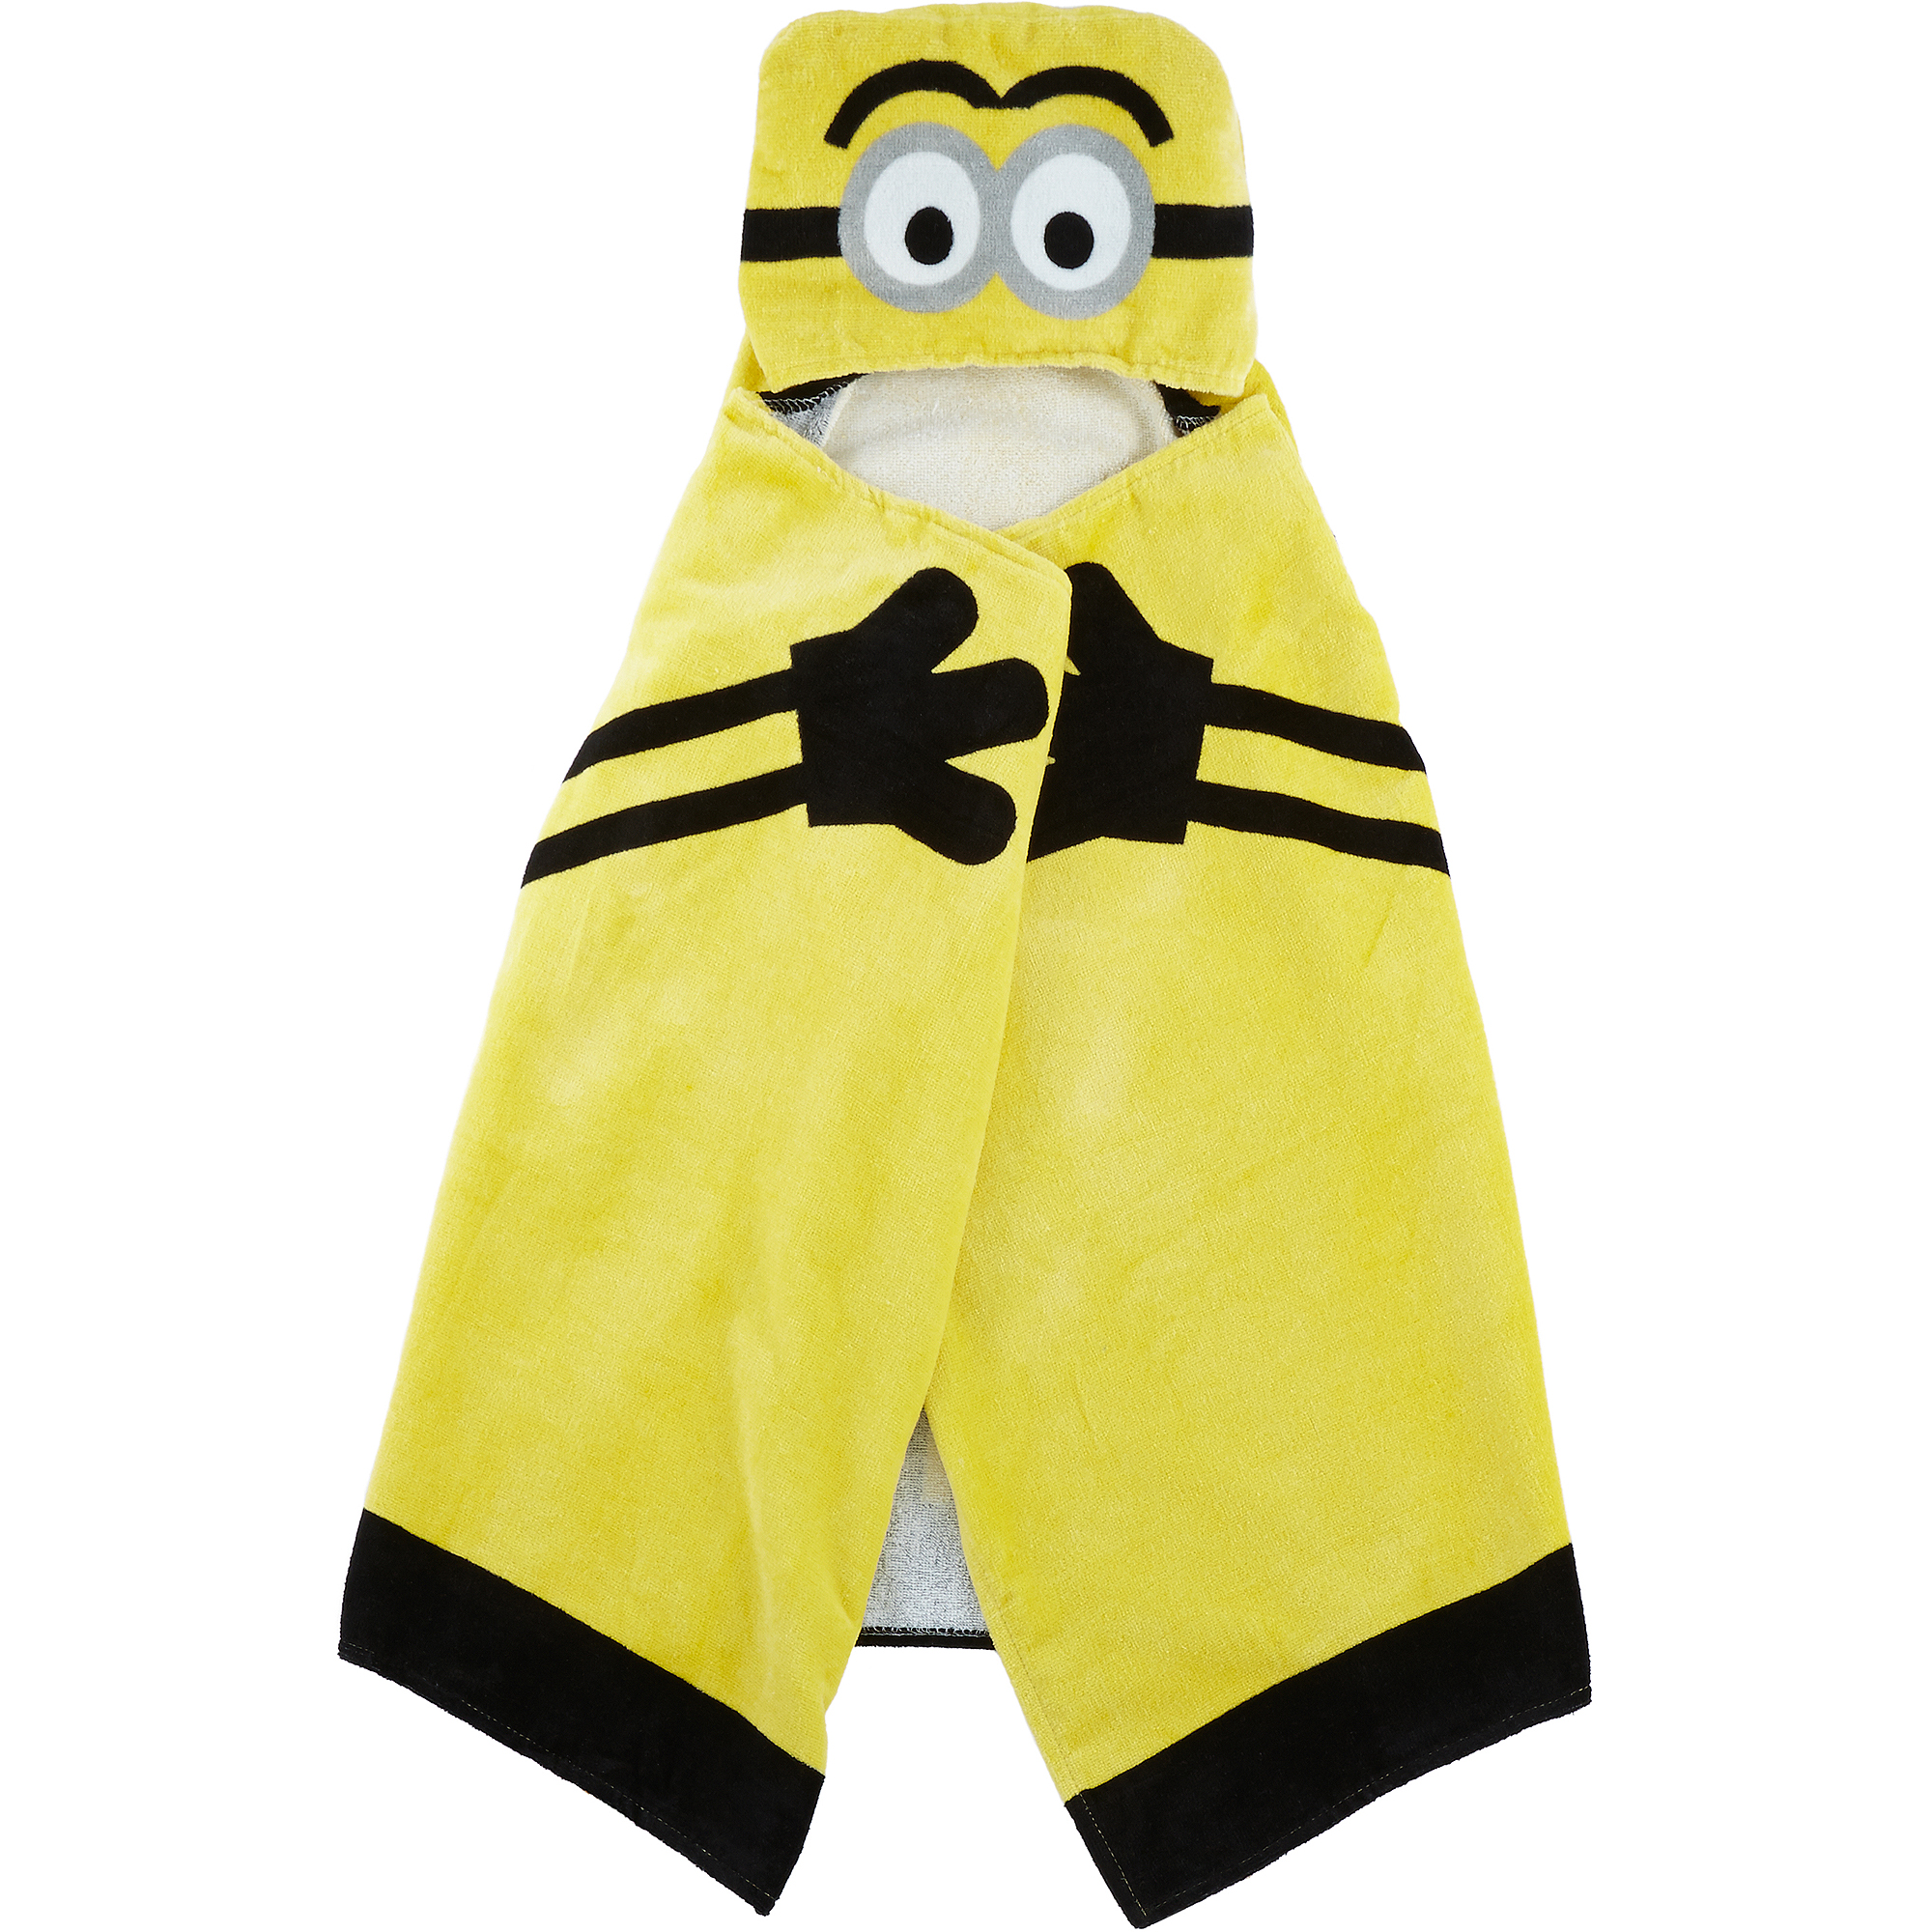 Universal's Minions Hooded Towel Wrap